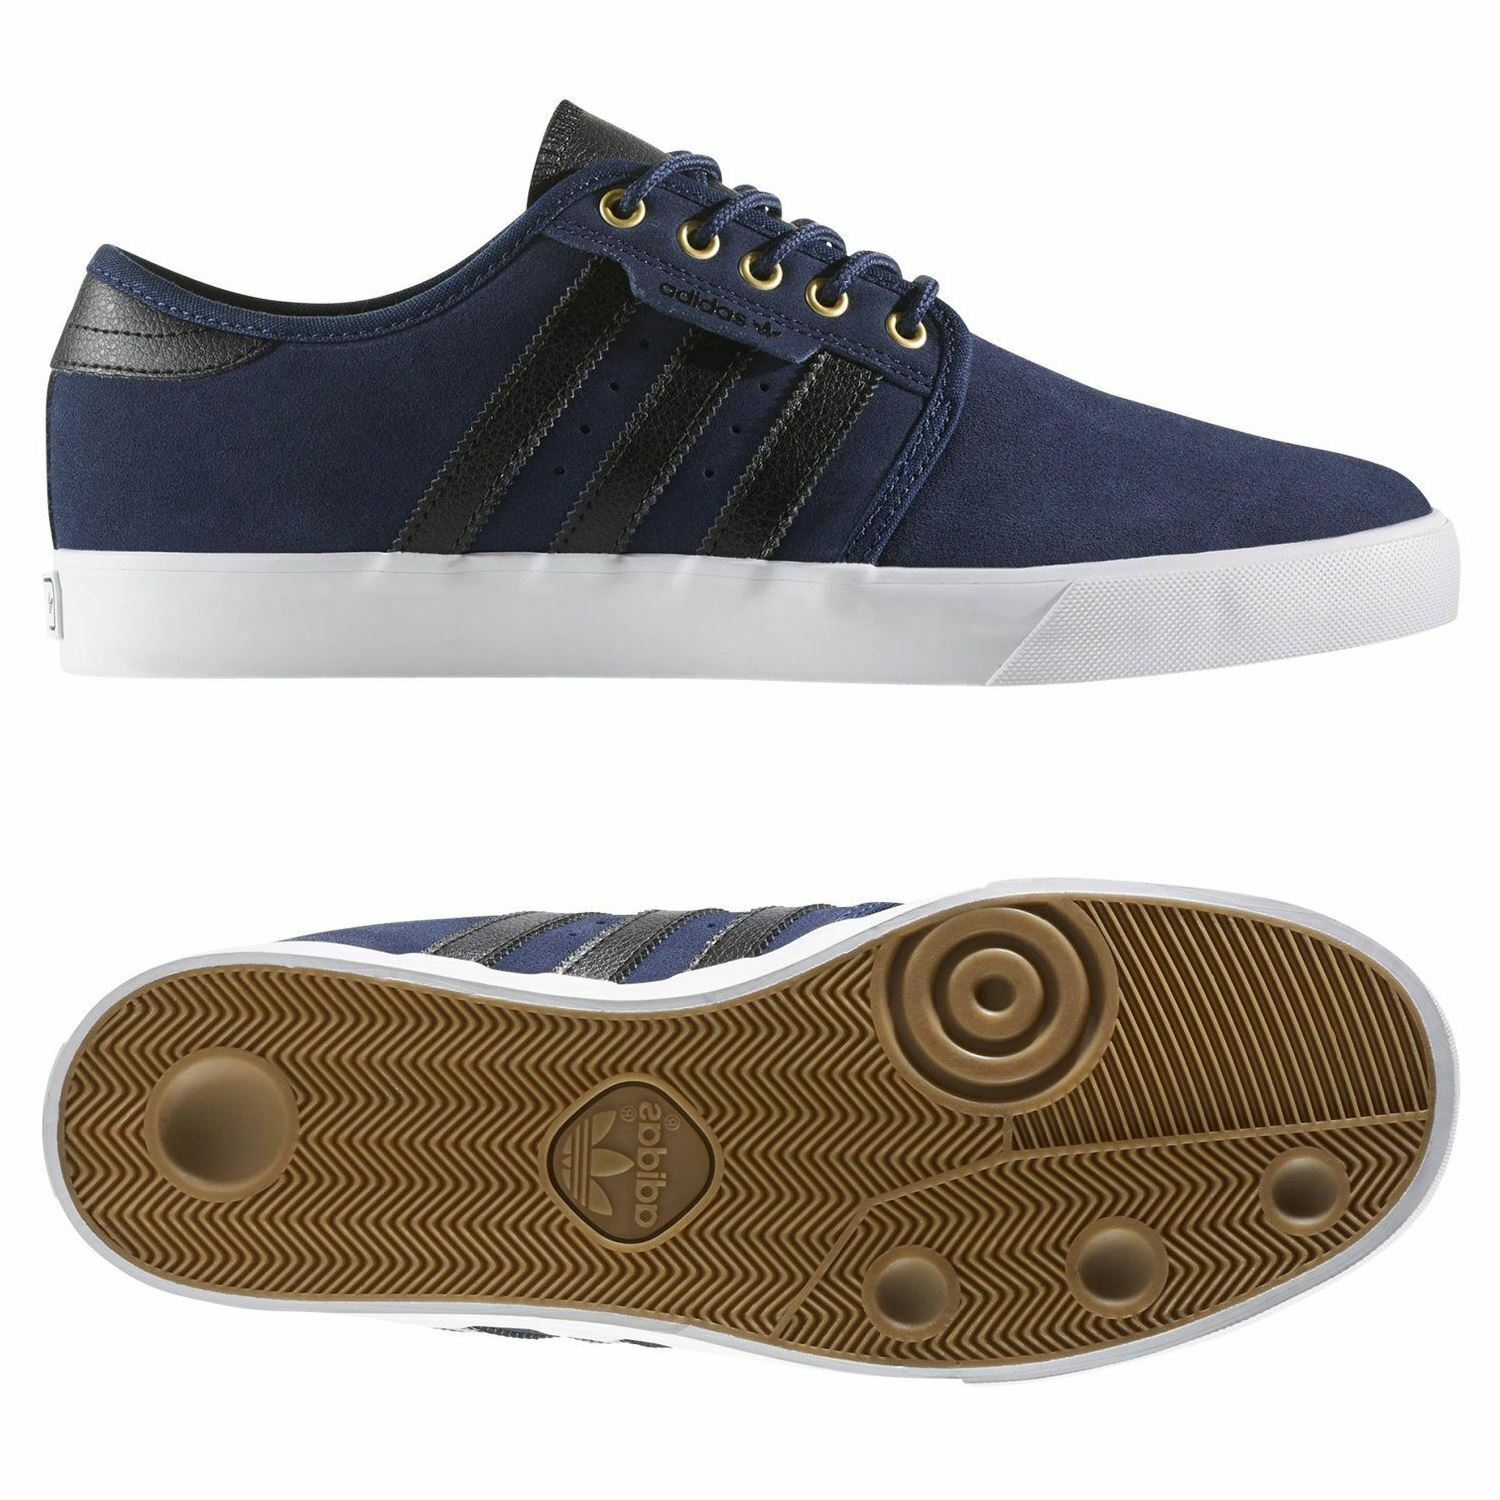 Adidas ORIGINALS SEELEY TRAINERS POUR HOMME BLEUS SNEAKERS SKATEBOARDING